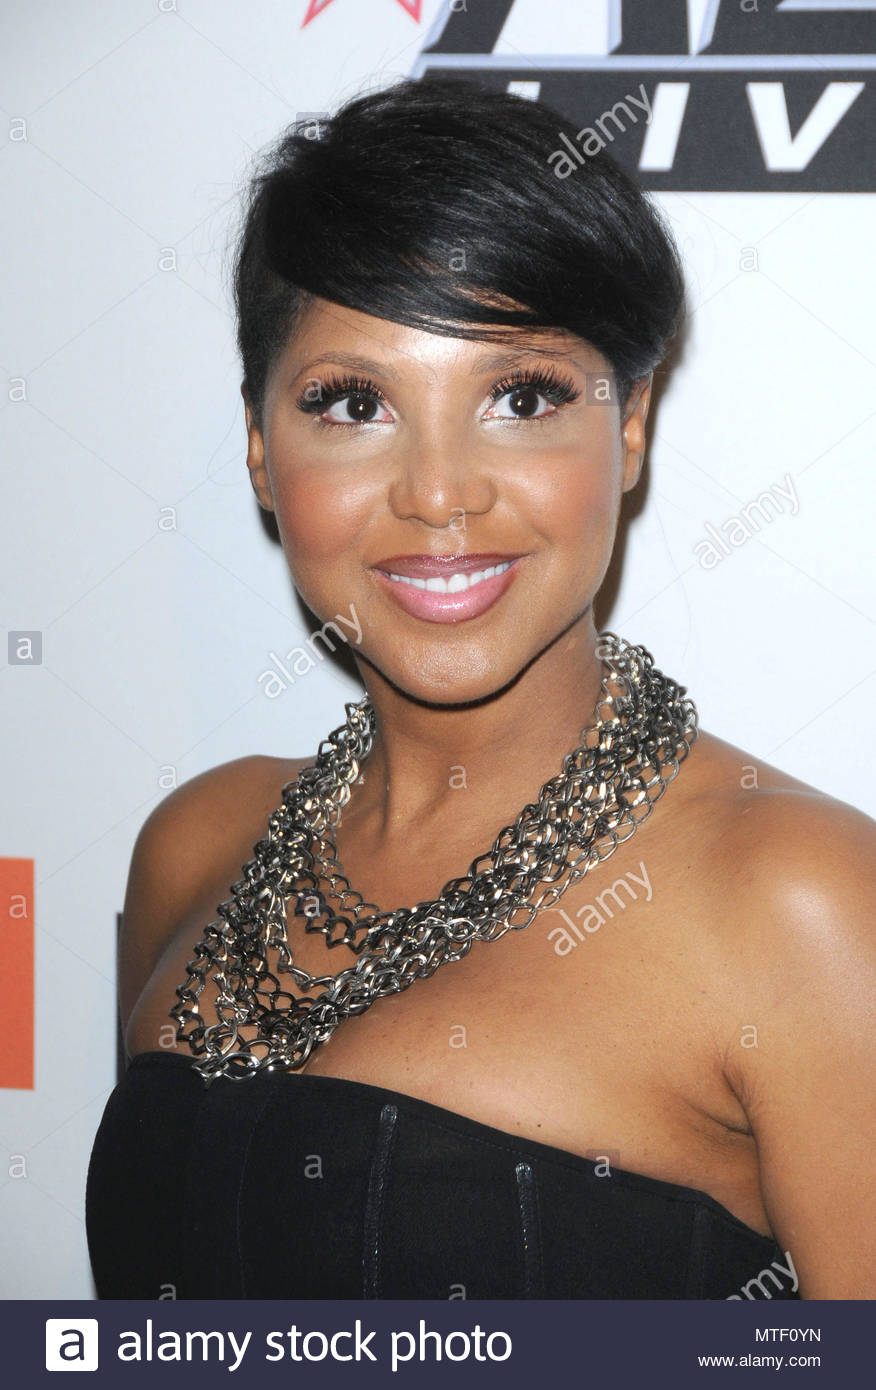 Celebrites Toni Braxton naked (17 photo), Pussy, Hot, Selfie, in bikini 2019